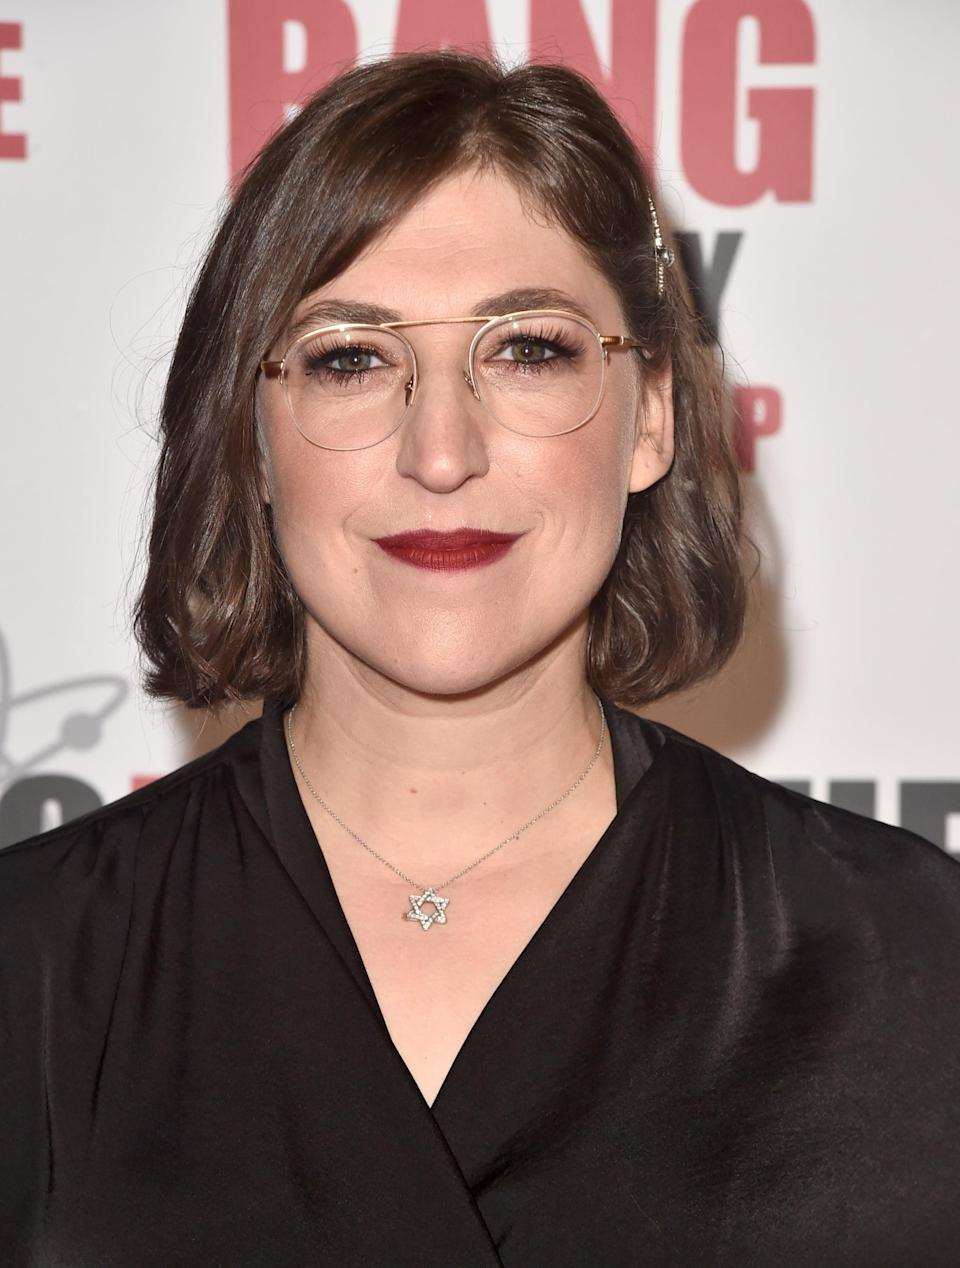 """<p>Real-life neuroscientist Mayim Bialik - aka eccentric neurobiologist Amy Farrah Fowler - will continue to run her online lifestyle publication, <a href=""""https://groknation.com/"""" class=""""link rapid-noclick-resp"""" rel=""""nofollow noopener"""" target=""""_blank"""" data-ylk=""""slk:Grok Nation""""><strong>Grok Nation</strong></a>, which covers everything from news, to style, to health. According to <strong>IMDb</strong>, she will also reprise her voice character role of """"The B.O.O.T.H."""" in the upcoming sci-fi comedy, <strong><a href=""""http://www.imdb.com/title/tt3615336/"""" rel=""""nofollow noopener"""" target=""""_blank"""" data-ylk=""""slk:The Inspector Chronicles"""" class=""""link rapid-noclick-resp"""">The Inspector Chronicles</a></strong>, which is based on the British TV show staple, <strong>Doctor Who</strong>. </p> <p>As she's written <a href=""""https://www.popsugar.com/buy?url=https%3A%2F%2Fwww.amazon.com%2FMayim-Bialik%2Fe%2FB00796CCRW%2Fref%3Das_li_ss_tl%3Fqid%3D1538665323%26sr%3D8-1%26linkCode%3Dsl2%26tag%3Dgroknation-20%26linkId%3D1f90b95d76155f9c415171e55ec13b98%26language%3Den_US&p_name=four%20books&retailer=amazon.com&evar1=buzz%3Aus&evar9=46309468&evar98=https%3A%2F%2Fwww.popsugar.com%2Fentertainment%2Fphoto-gallery%2F46309468%2Fimage%2F46309538%2FMayim-Bialik&list1=tv%2Cthe%20big%20bang%20theory&prop13=api&pdata=1"""" rel=""""nofollow noopener"""" target=""""_blank"""" data-ylk=""""slk:four books"""" class=""""link rapid-noclick-resp"""">four books</a> in the past on topics covering everything from parenting and politics, it also seems likely that Bialik will eventually pen a fifth novel as well. </p>"""